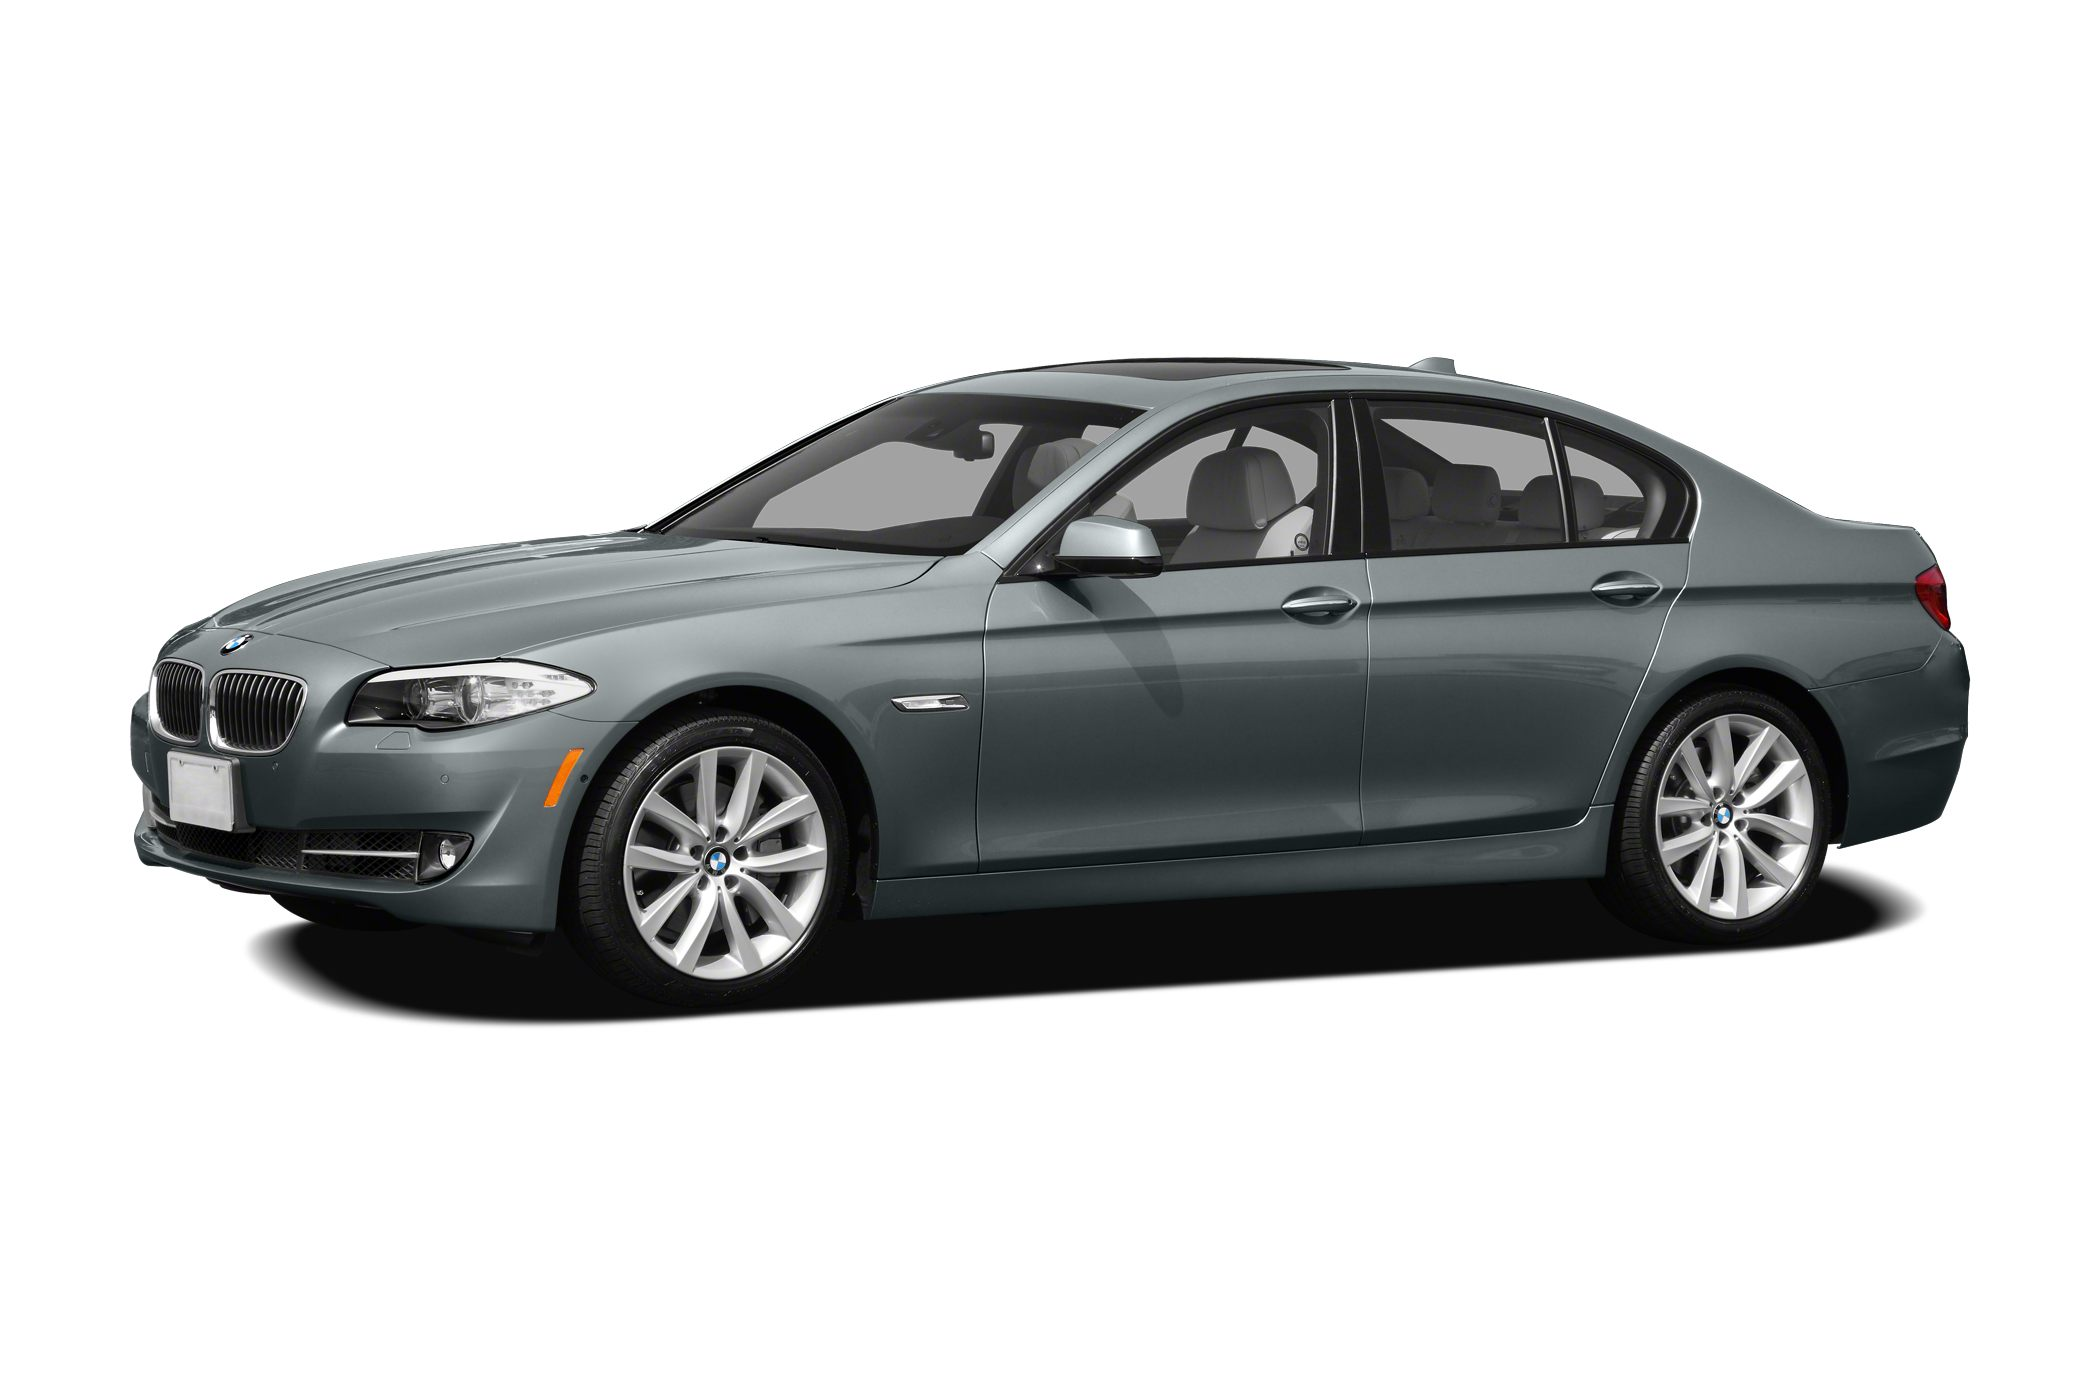 2012 BMW 550 I XDrive Sedan for sale in Great Neck for $41,995 with 45,821 miles